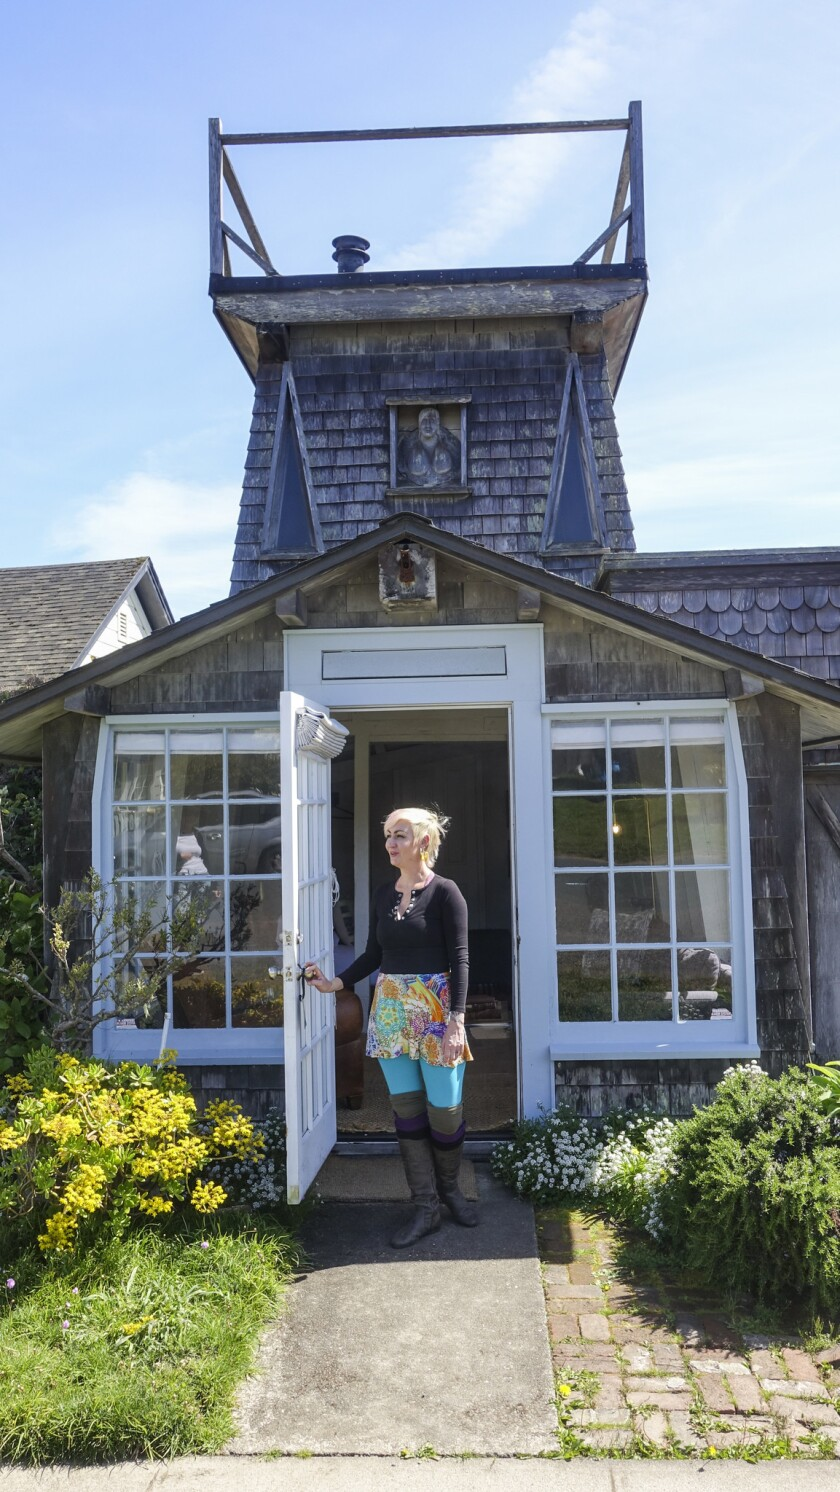 ONE TIME USE - *****PHOTO SLATED FOR TRAVEL SECTION ON 4/30**** Mendocino, CA ? April 23, 2019: Gue